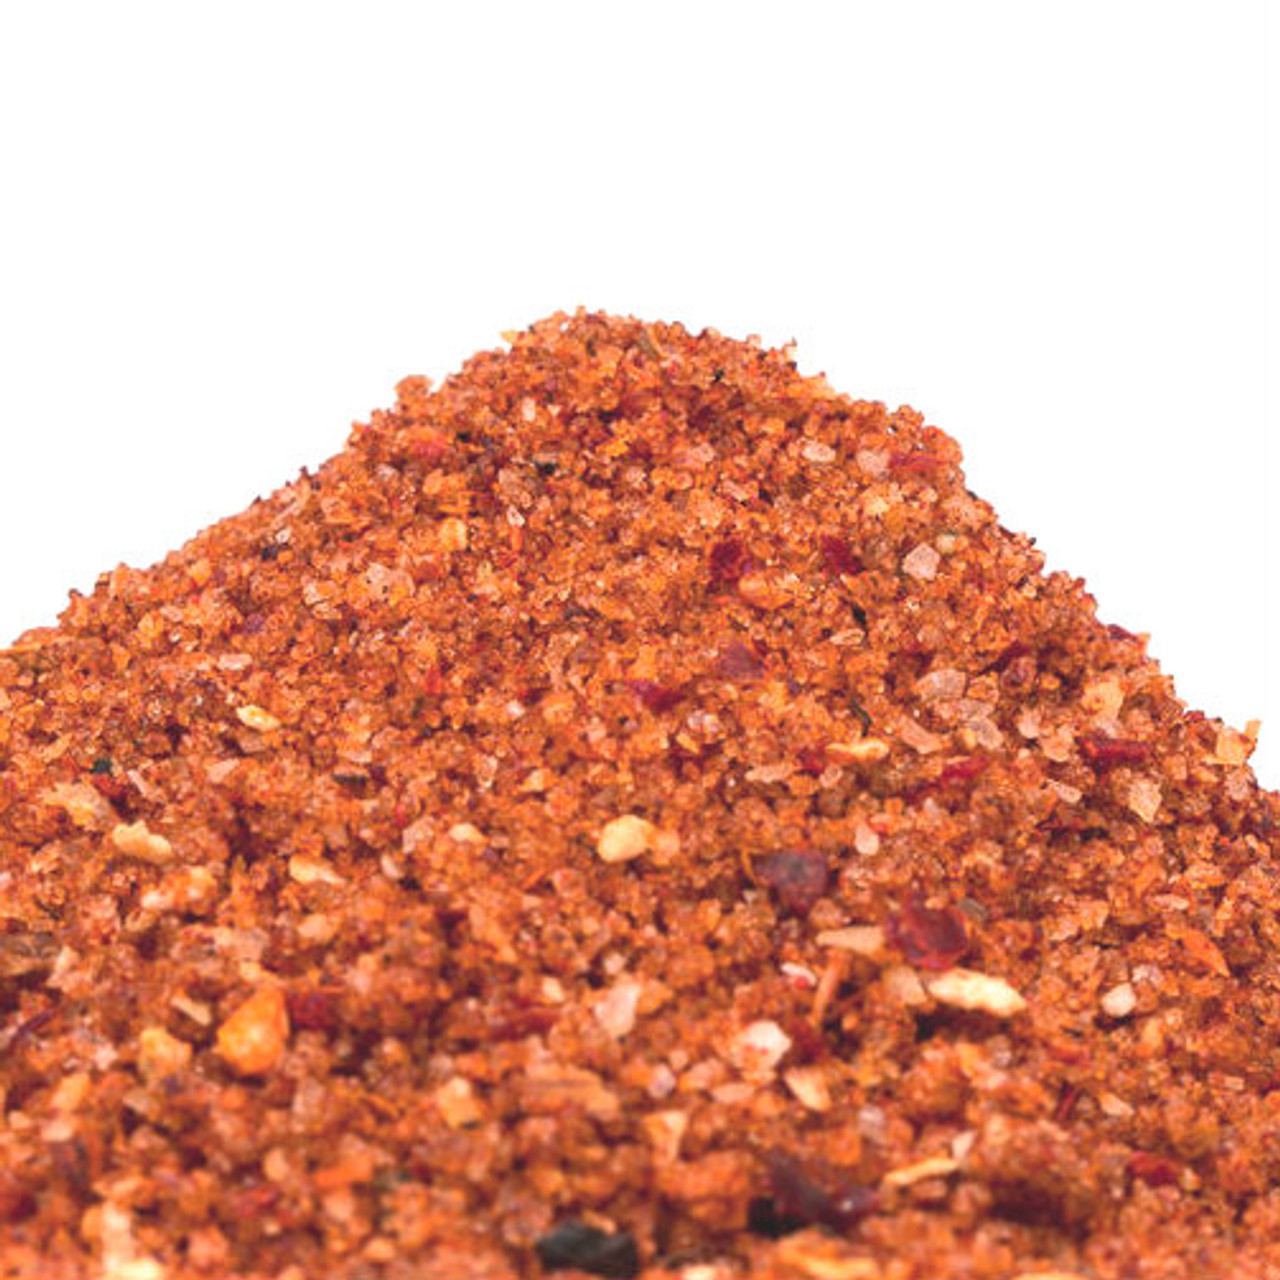 The perfect blend of spices for our favorite fish. Brown sugar, salt, pepper, chili, garlic, lemon, mustard, onion and coriander combine for a mouthwatering traditional Pacific Northwest flavor that is sure to become one of your favorites as well. Rub onto salmon steak before grilling, roasting or frying. For an extraordinary flavor, use cedar grilling planks for grilling.